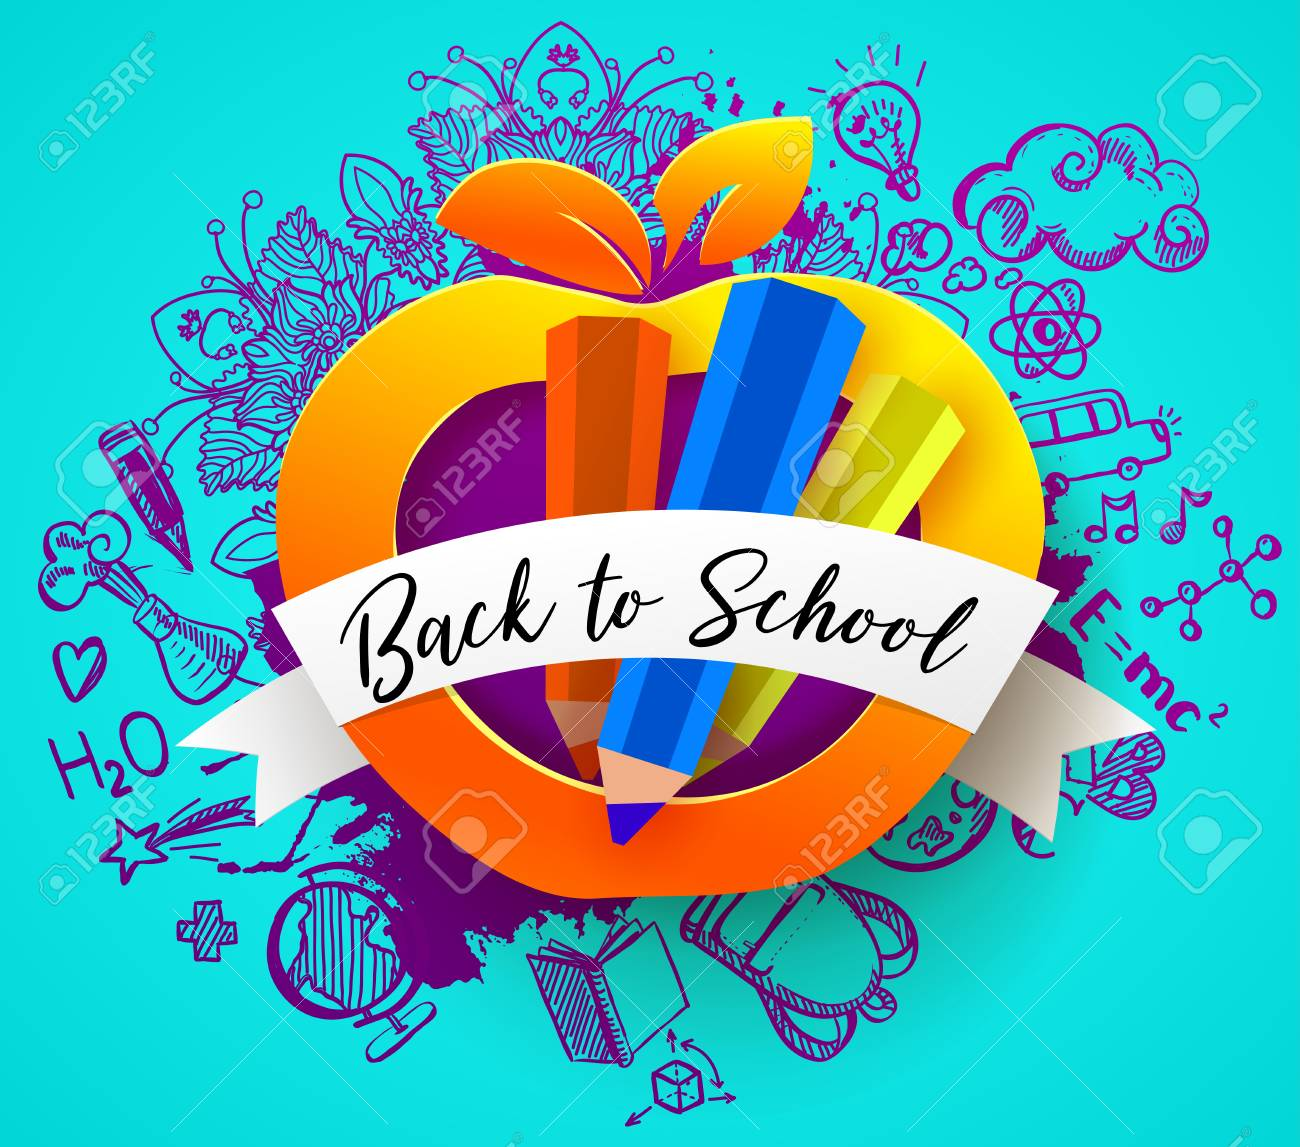 back to school horizontal banner with hand drawn education doodles